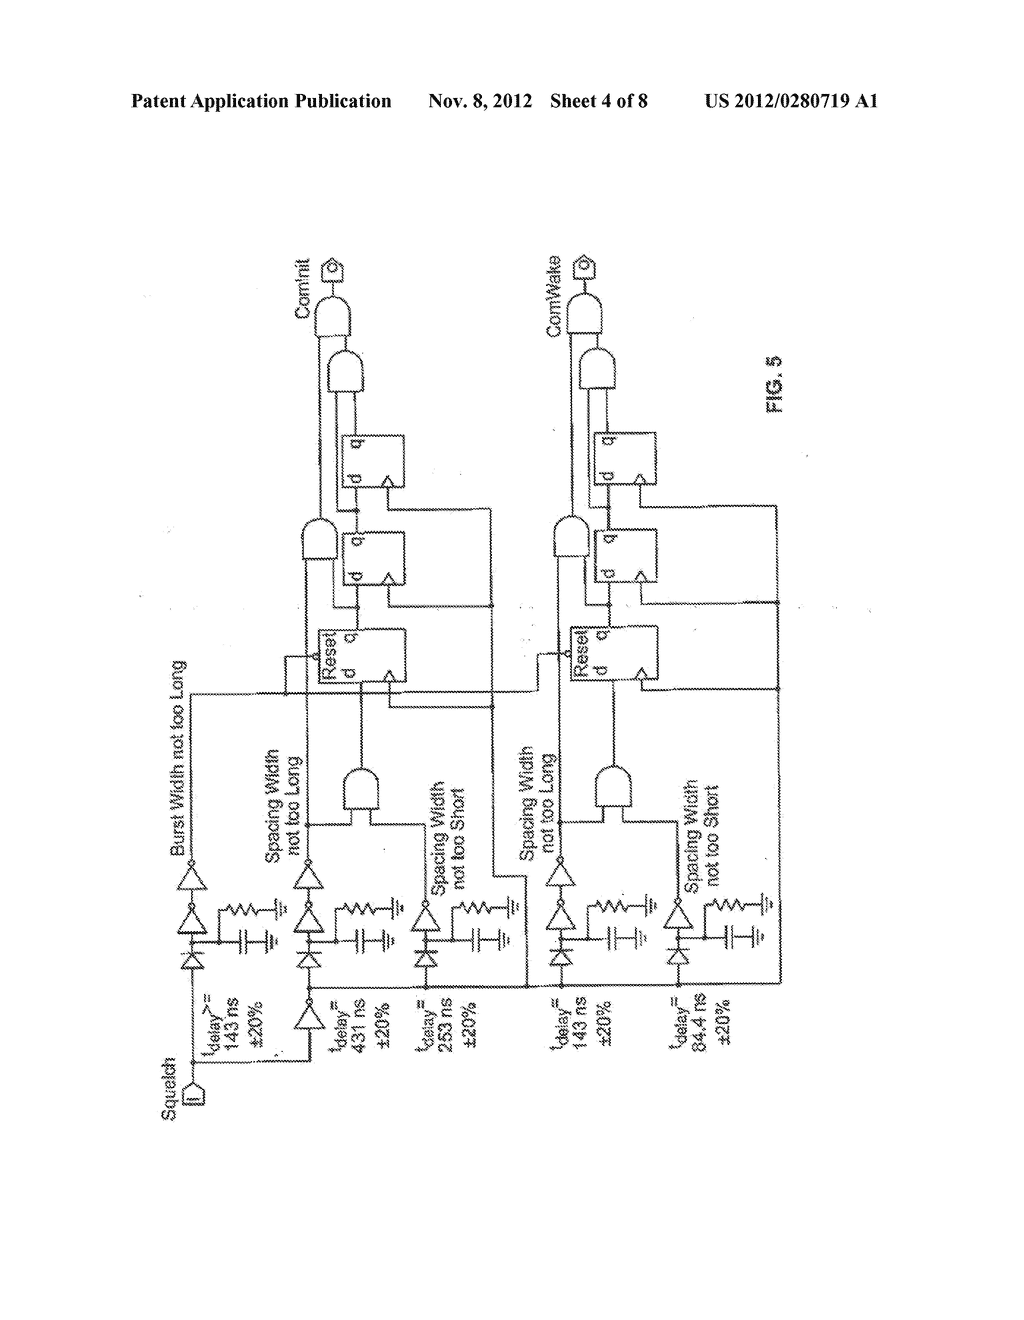 Sata Power Schematic Wiring Diagram Libraryapparatus And Method For Selectively Enabling Disabling A Squelch Circuit Across